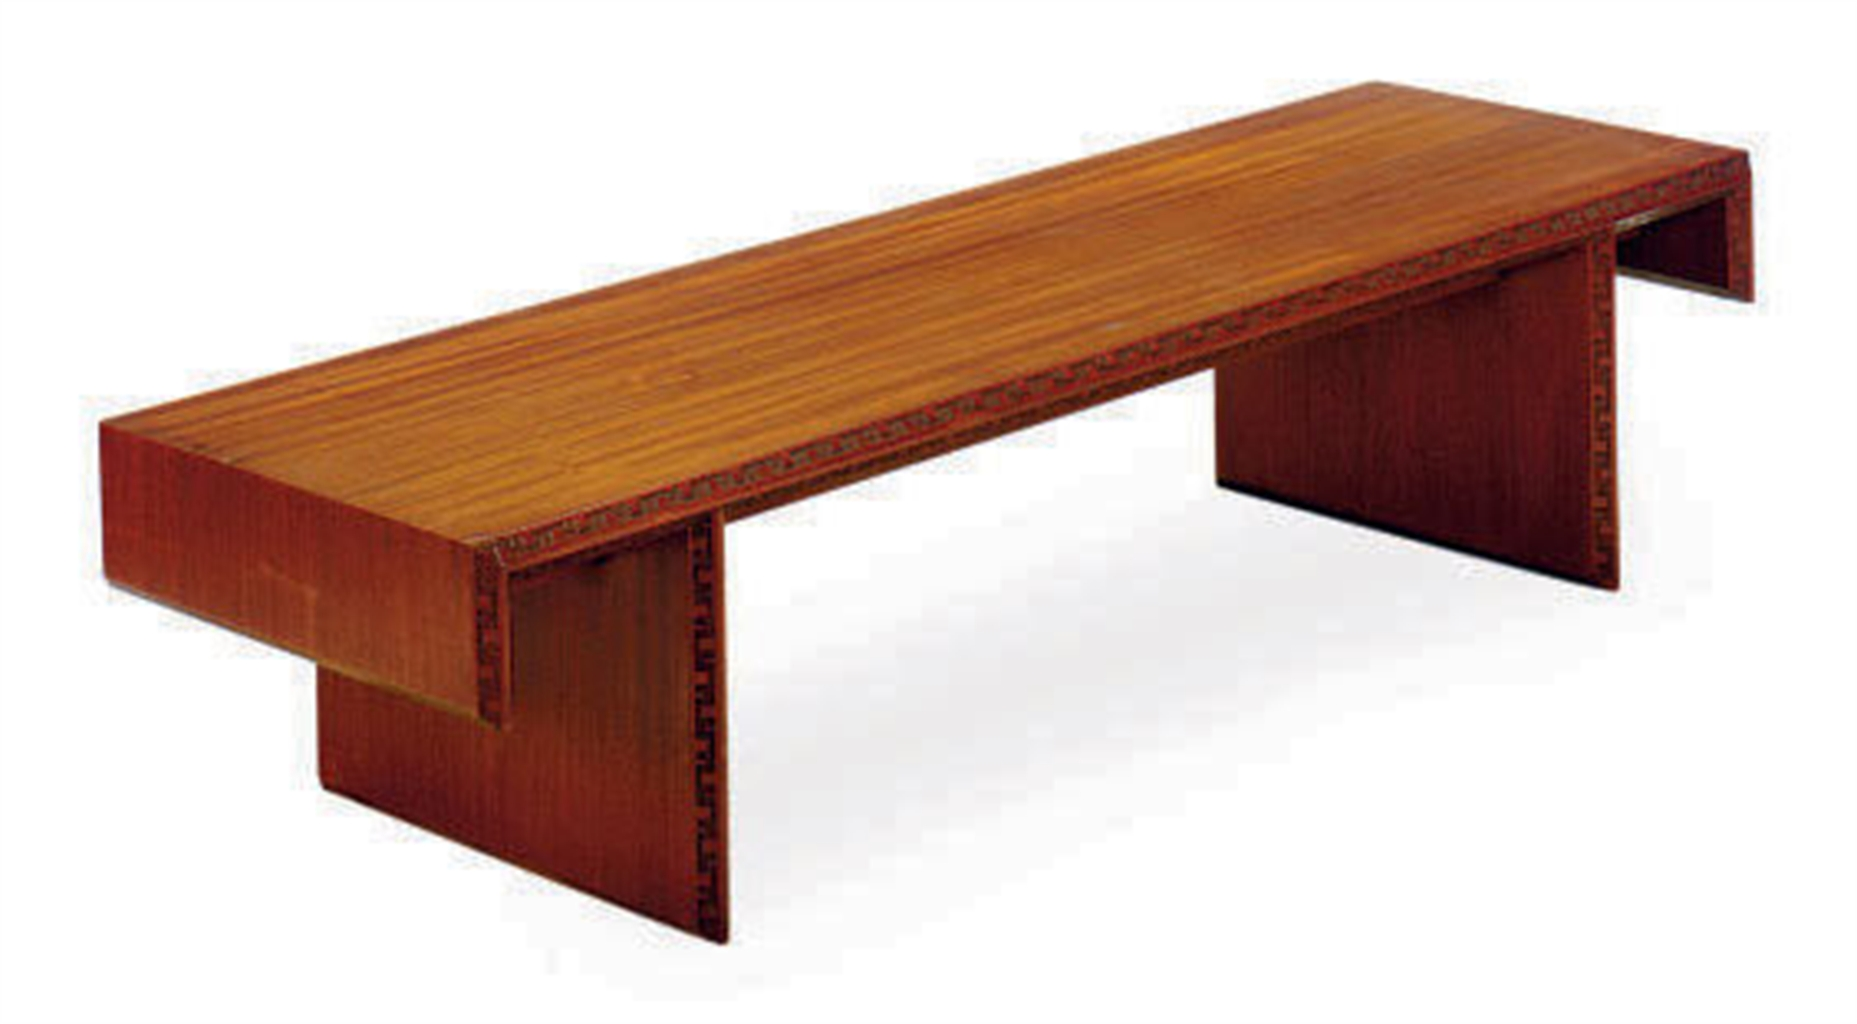 A Mahogany 39 Taliesin 39 Coffee Table Designed By Frank Lloyd Wright Circa 1955 For Heritage